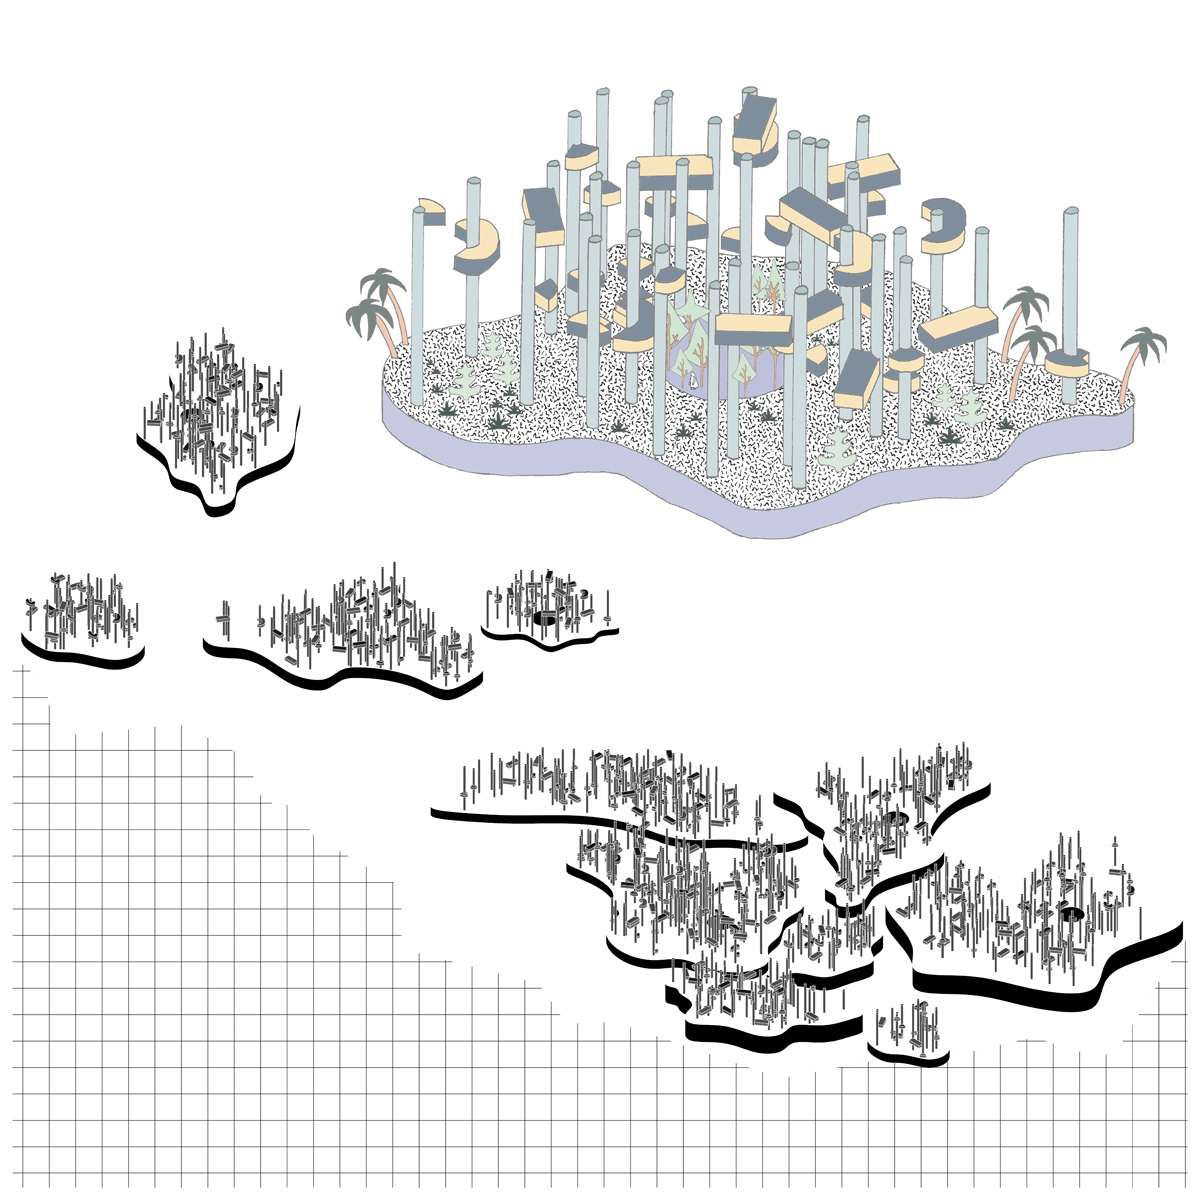 Concept axonometric drawings for an archipelago of new lands and units within the Salt River wash by student Cecile Kim